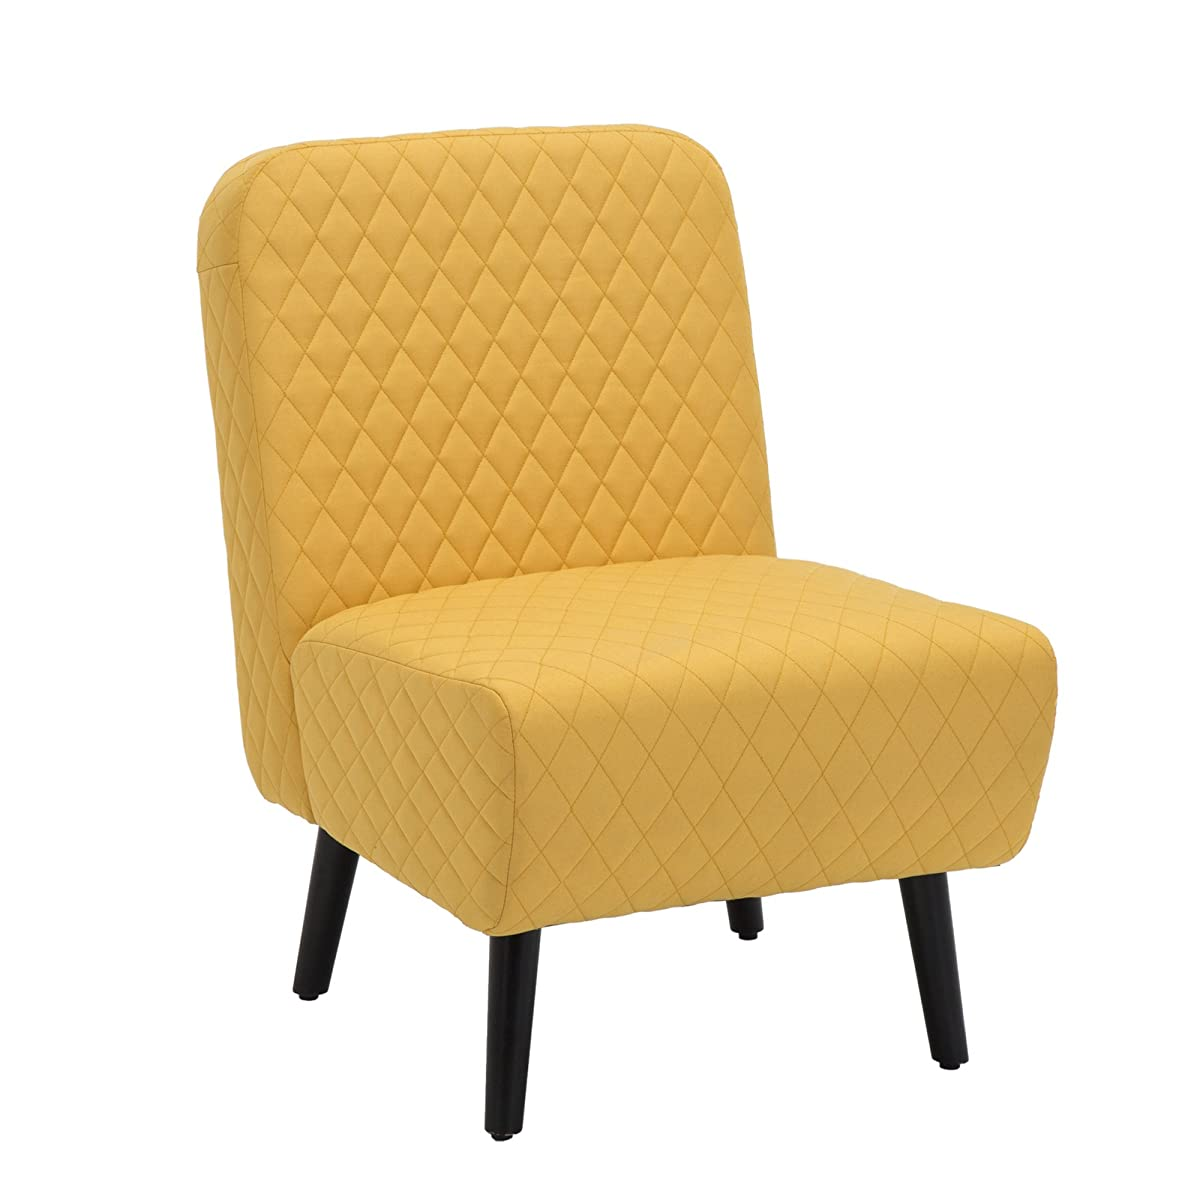 LSSBOUGHT Modern Muted Fabric Armless Chair Stylish Accent Chair (Yellow)